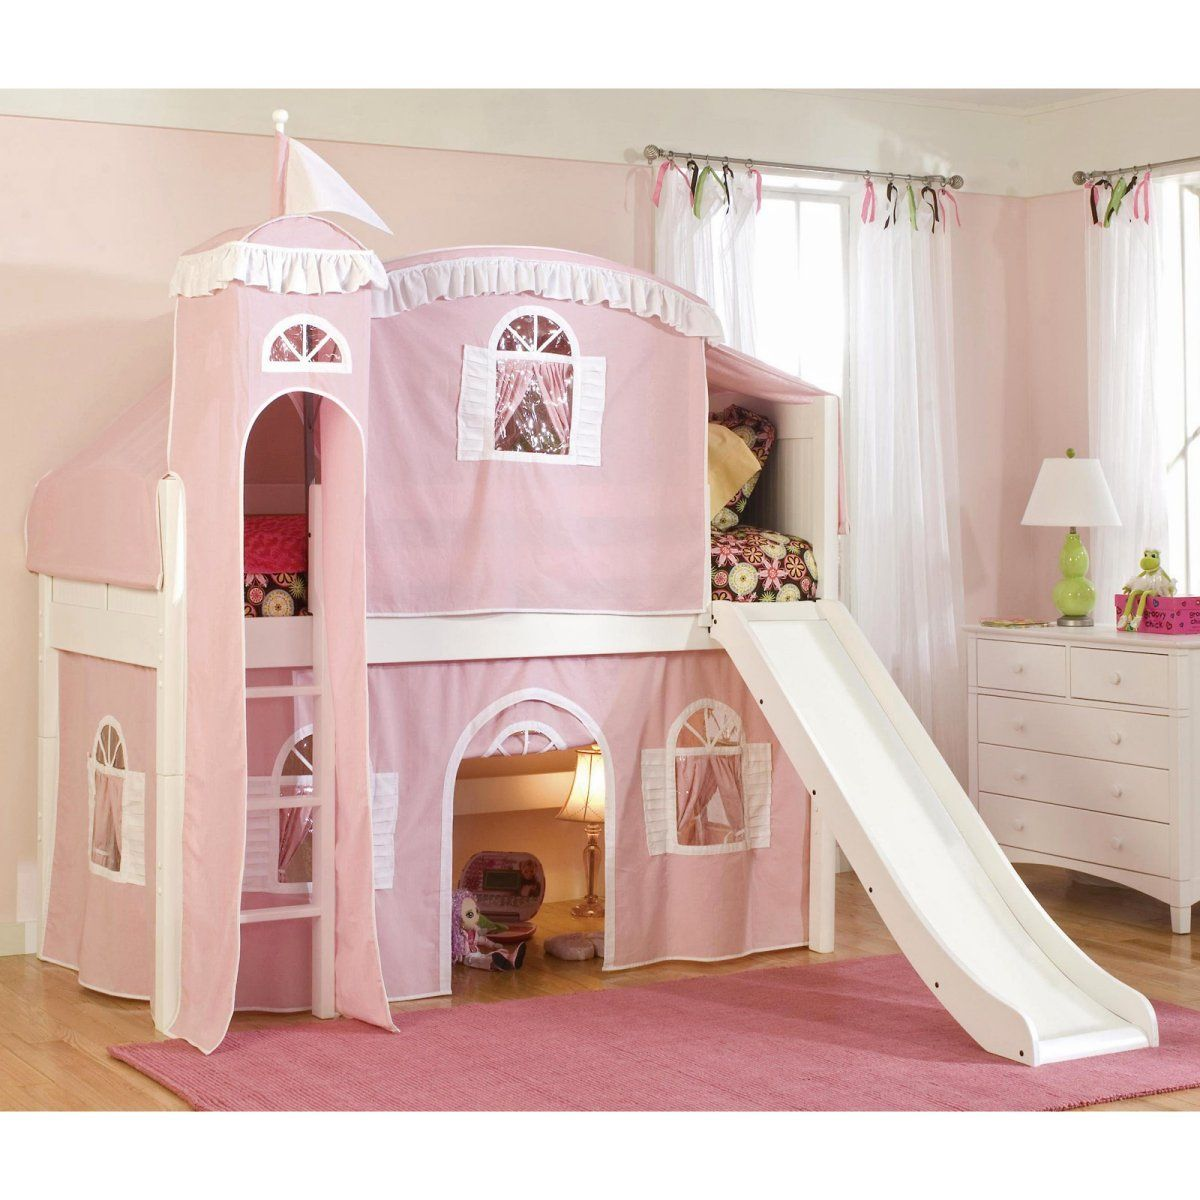 Cottage Deluxe Low Loft Tent Bed DIY? Getting this or